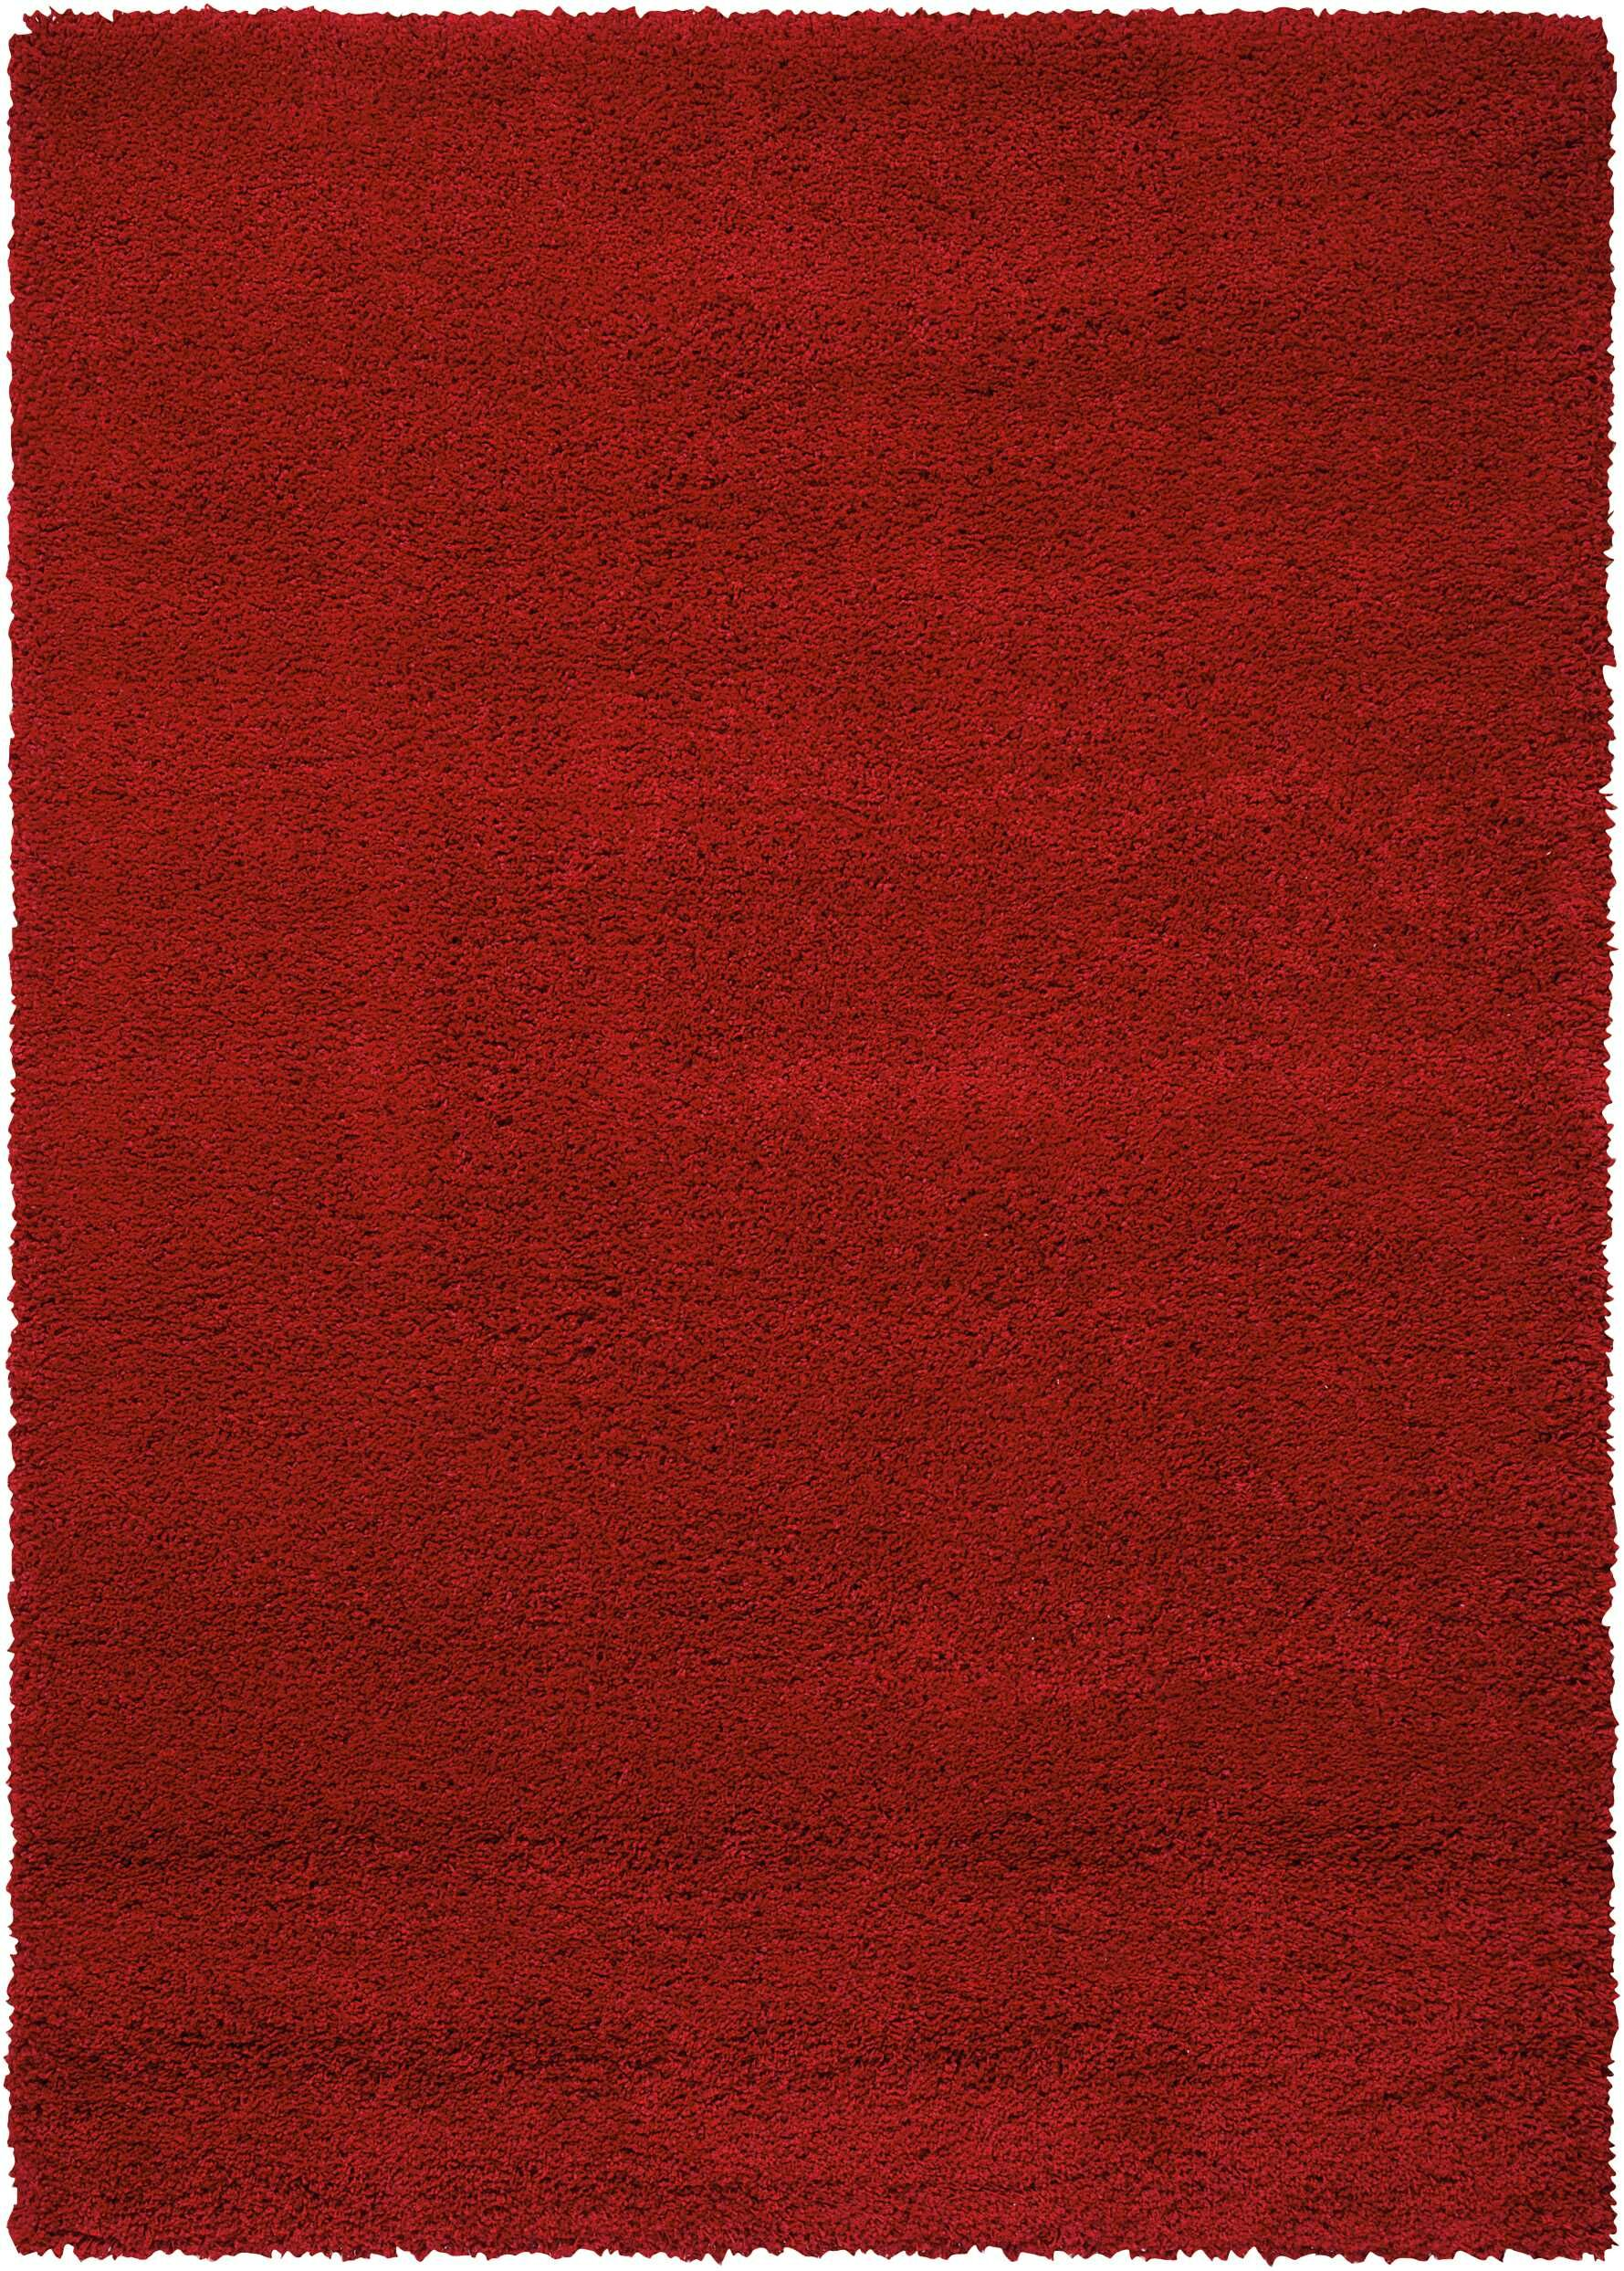 Shelley Red Area Rug Rug Size: Rectangle 5'3